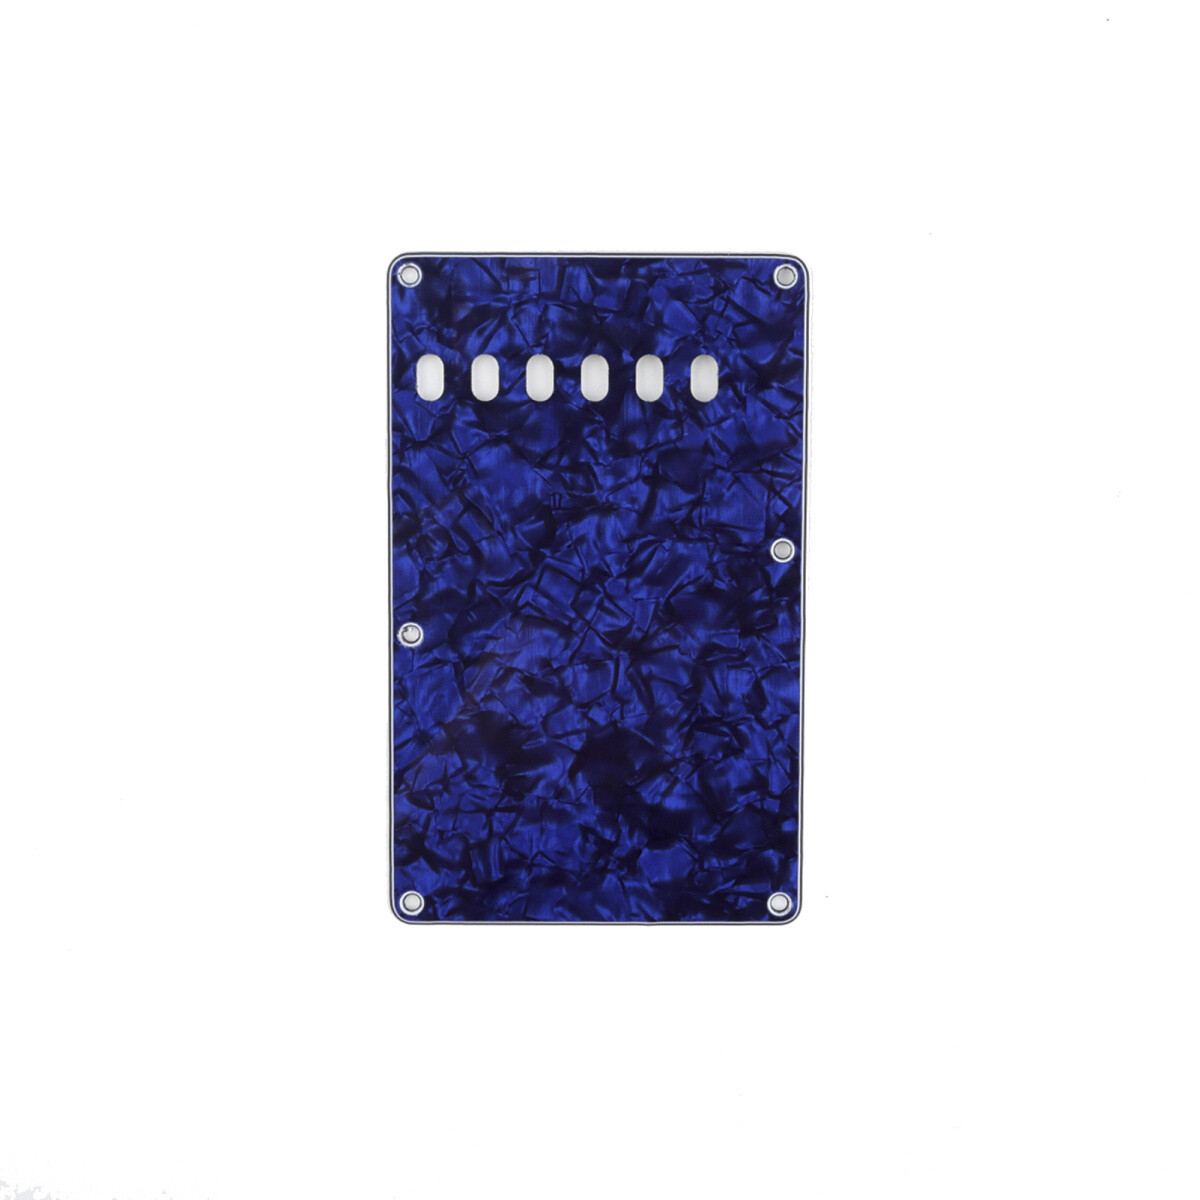 Brio Pearl Blue Vintage Style Back Plate Tremolo Cover 4 ply - US/Mexican Fender®Strat® Fit